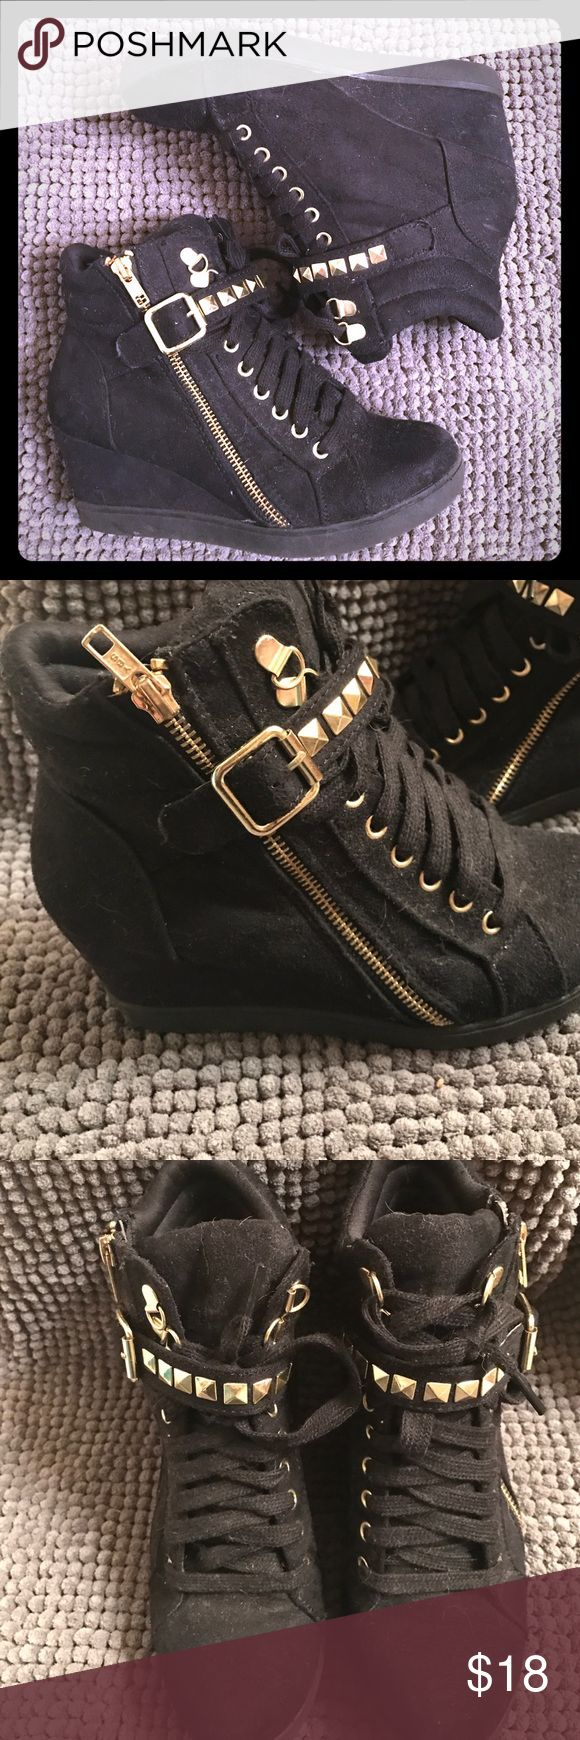 Black studded lace up hidden wedge shoes Worn a handful of times- a little dusty, but still super cute Shoes Sneakers